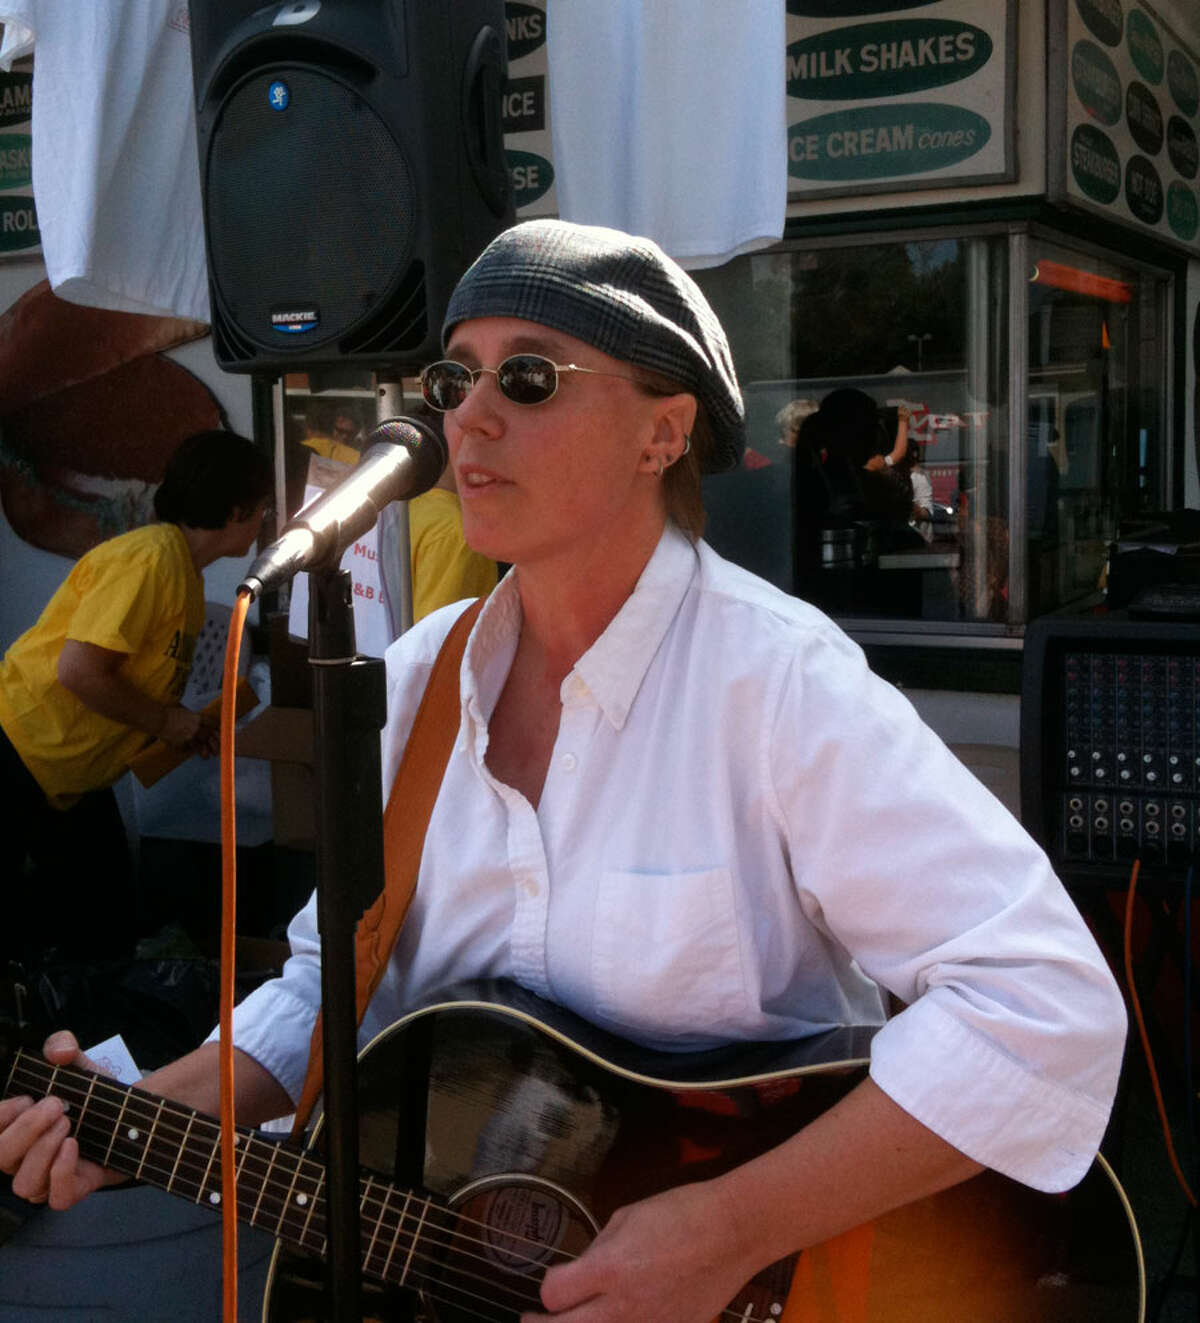 New Canaan native Lara Schuler has organized a benefit concert to support two programs for people in need in Redding. Pictured is Lara Schuler performing at an event. - Contributed photo